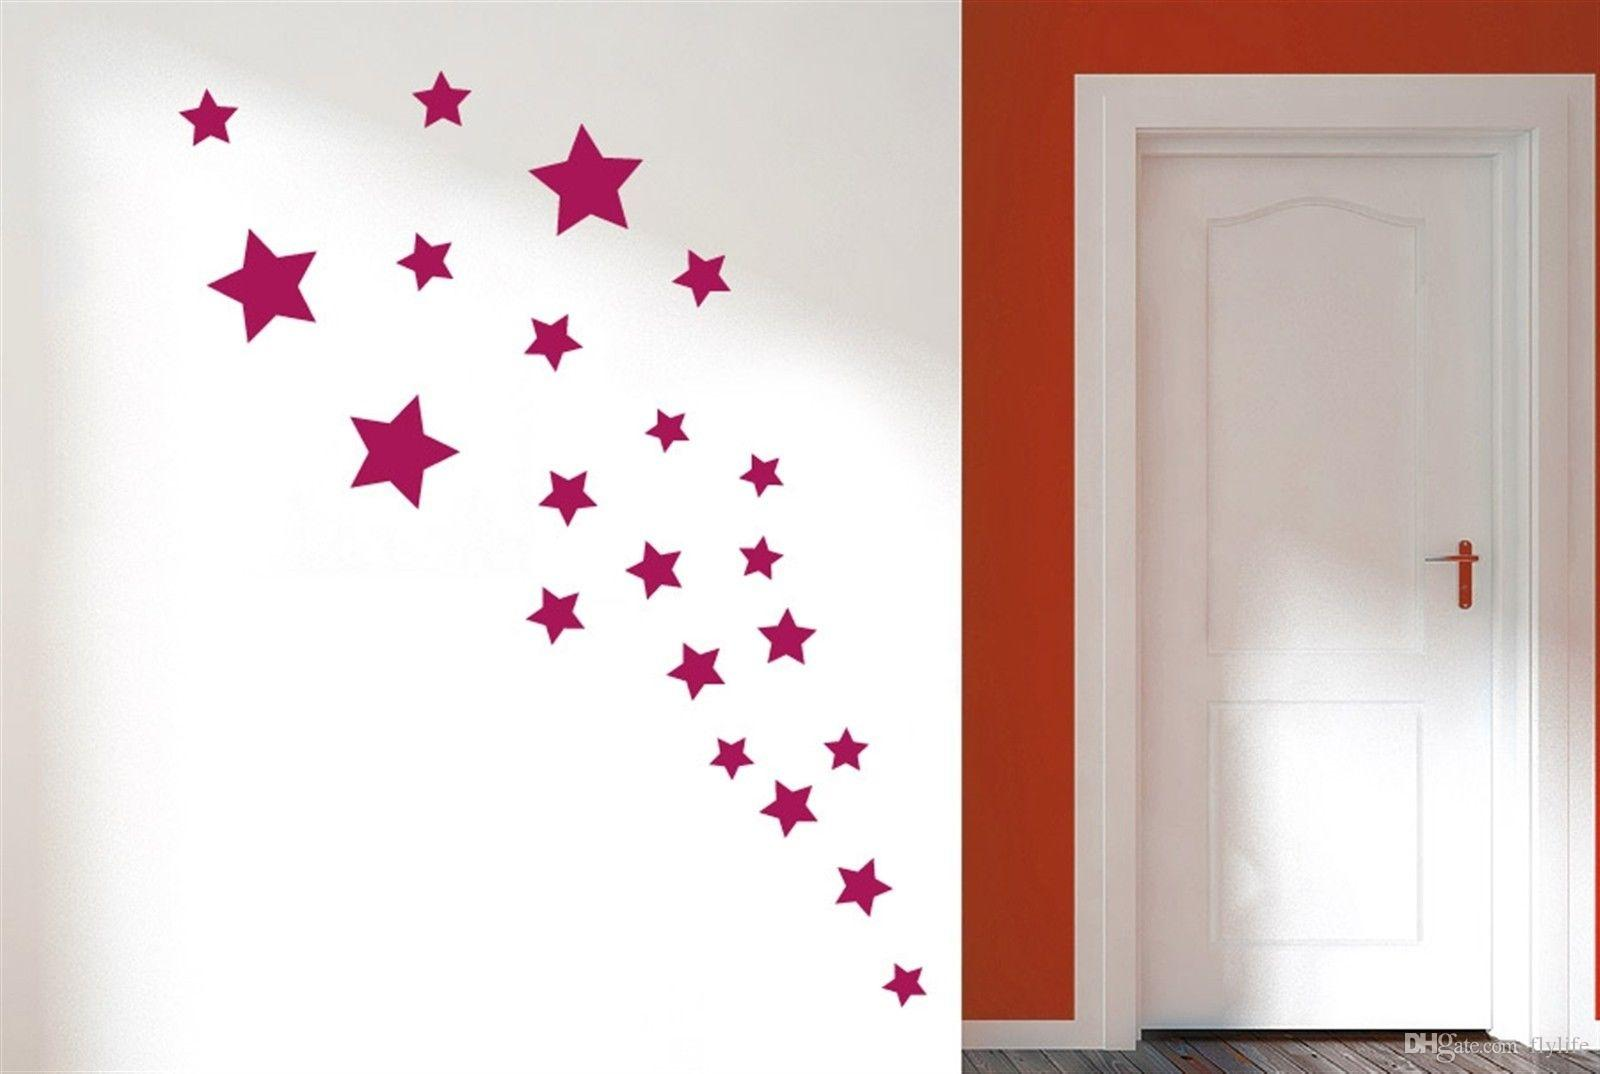 Wall decoration stickers for bedroom - Removable Various Color Stars Decorative Wall Stickers Vinyl Wall Art Decals For Kids Rooms Home Decor Wall Art Stickers Decorative Wall Decals Kids Room